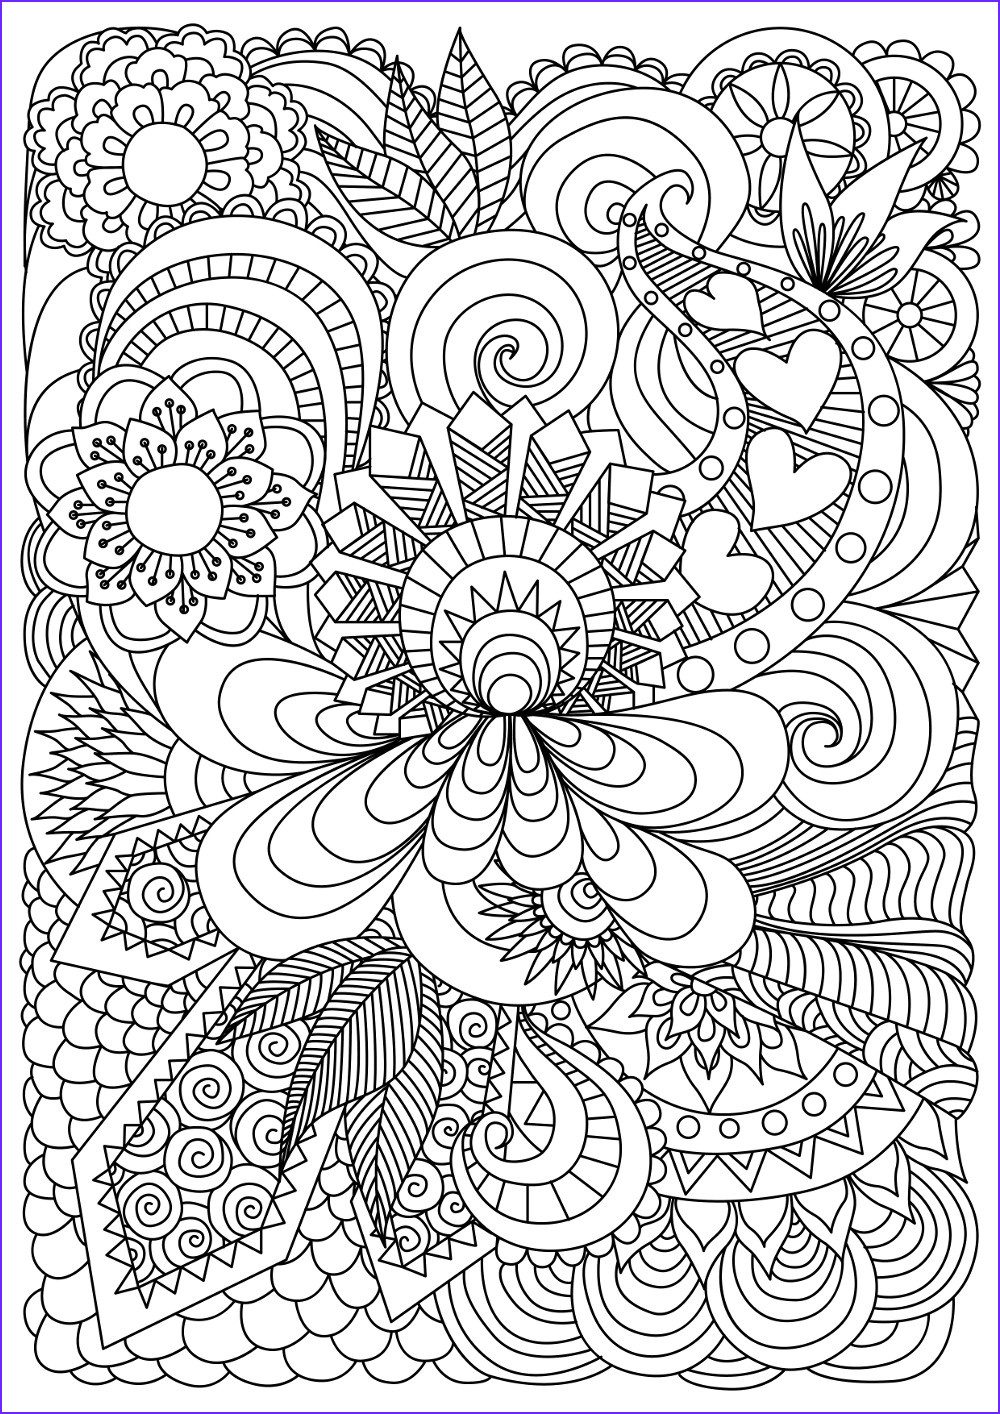 Printable Adult Coloring Sheets Luxury Images 37 Best Adults Coloring Pages Updated 2018